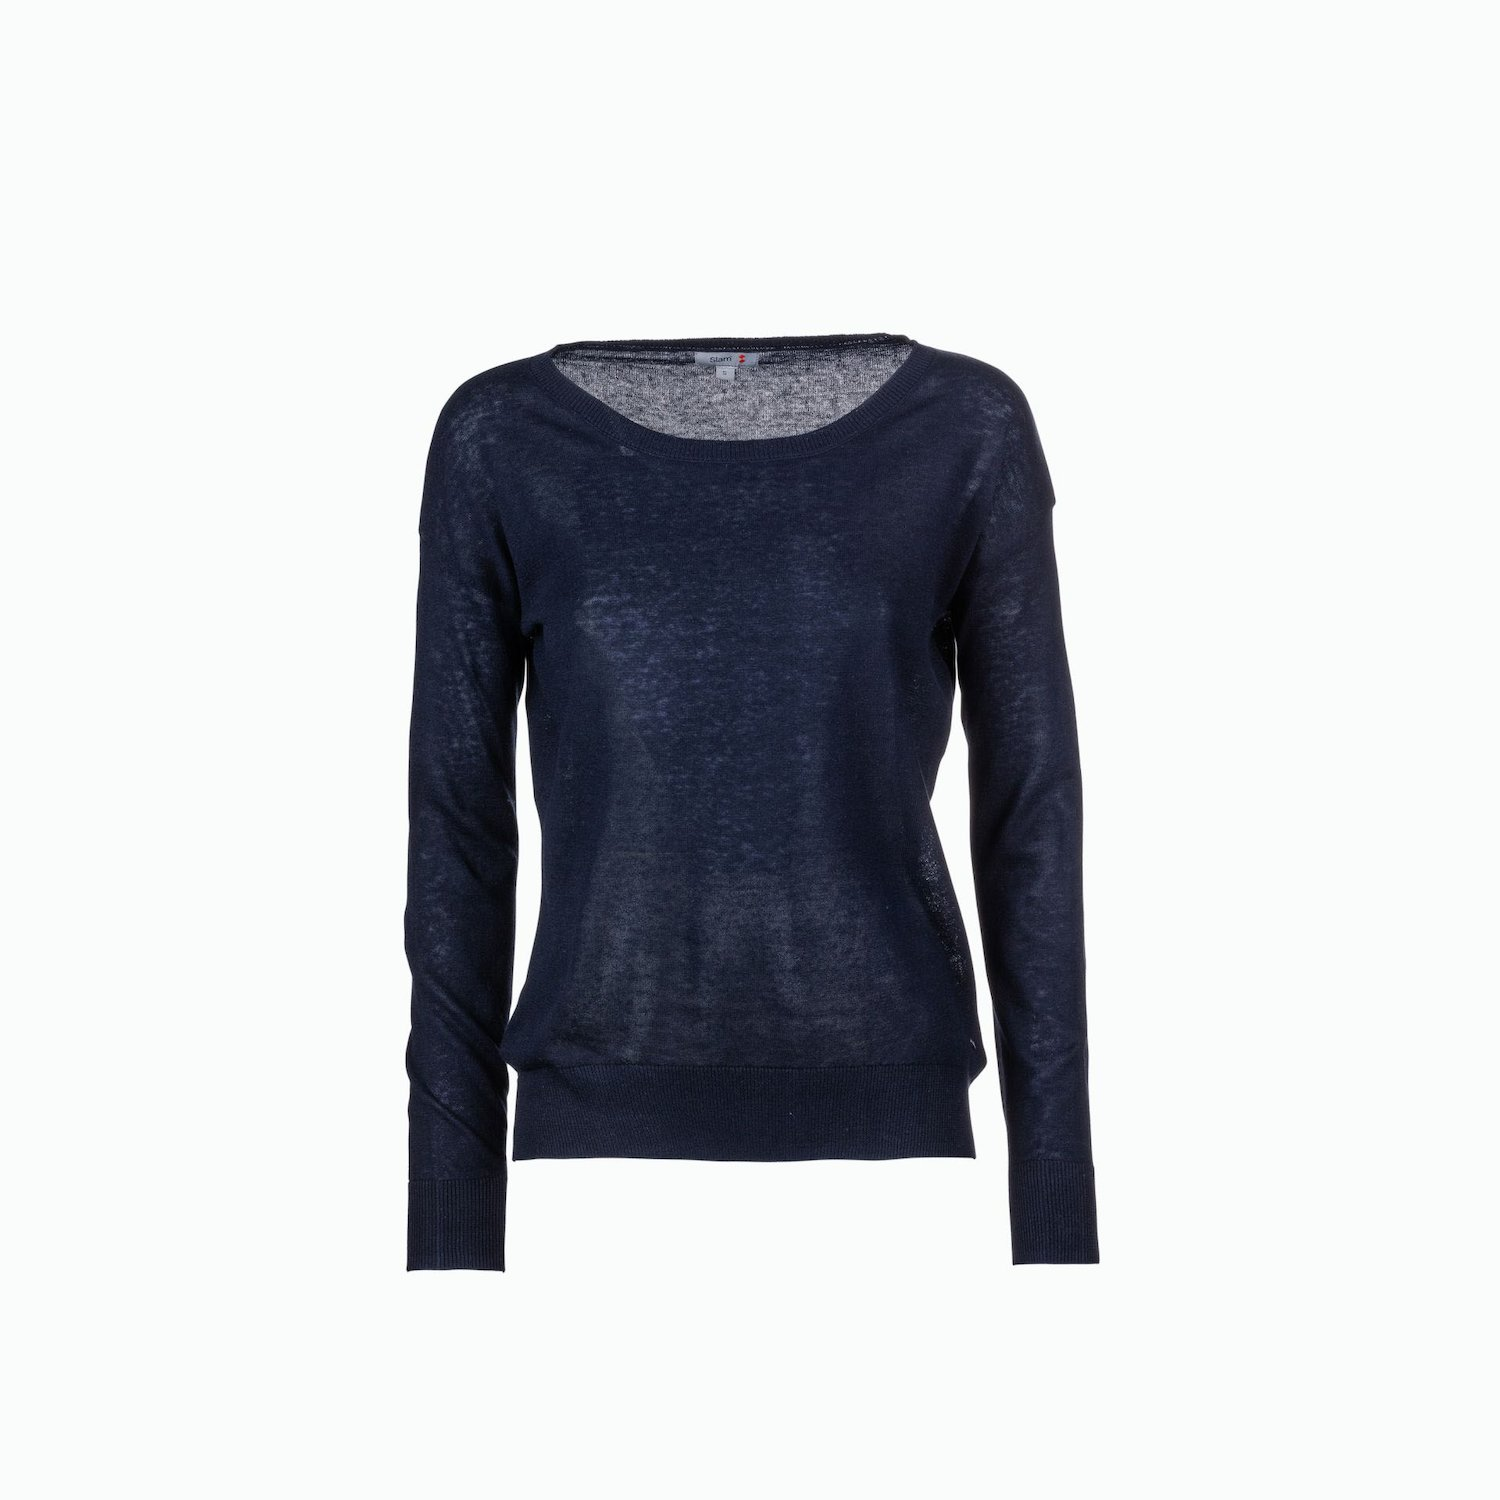 C163 Jumper - Navy Blau